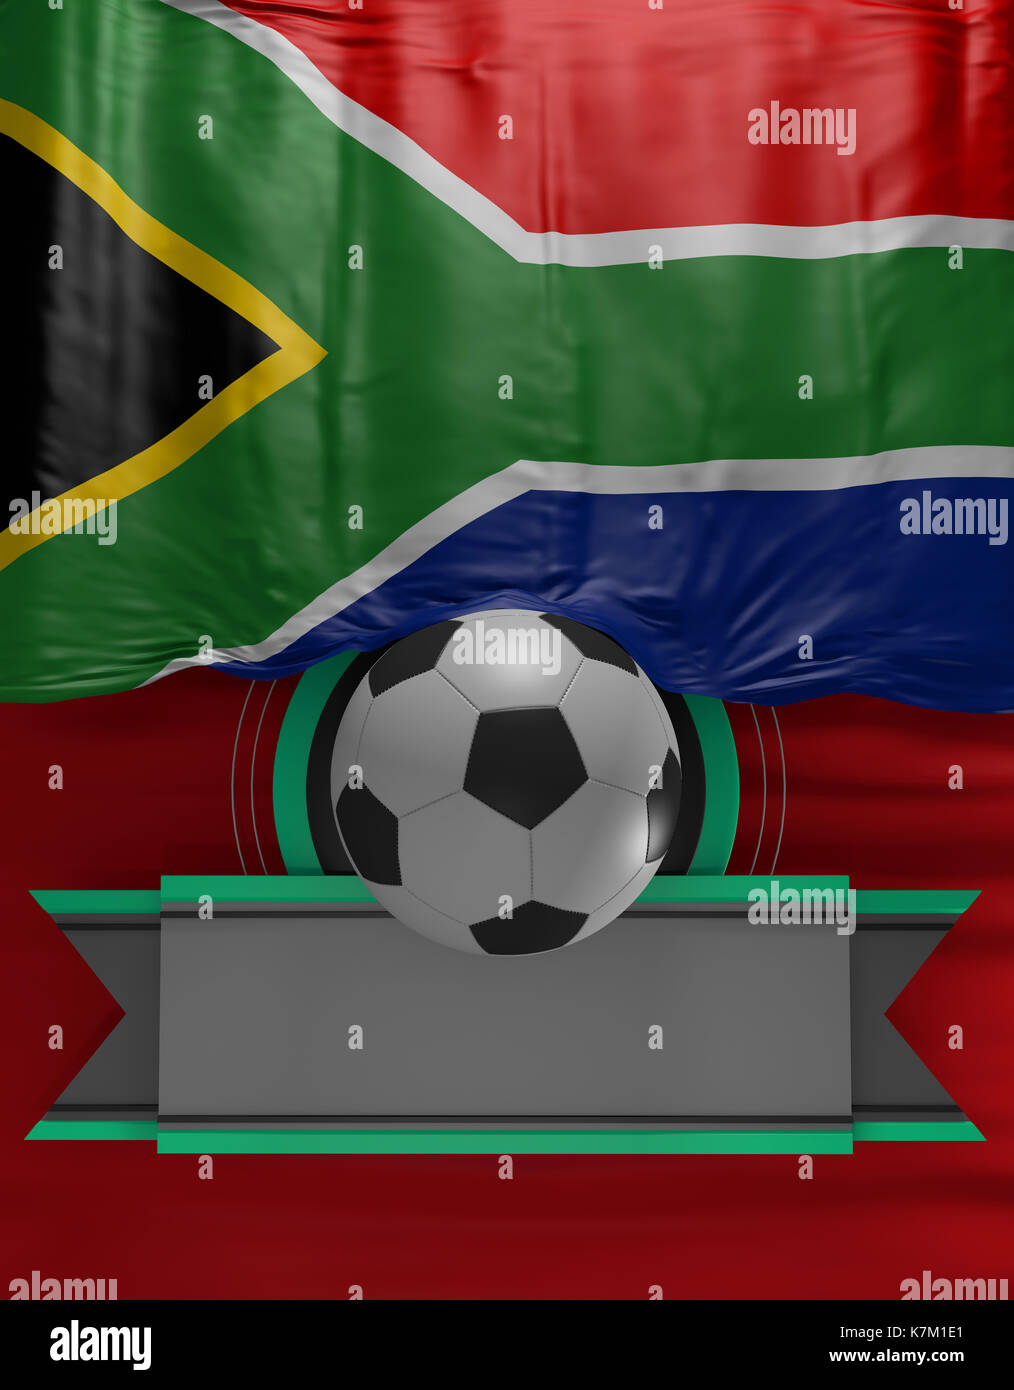 South African Flag Soccer Ball Stockfotos & South African Flag ...